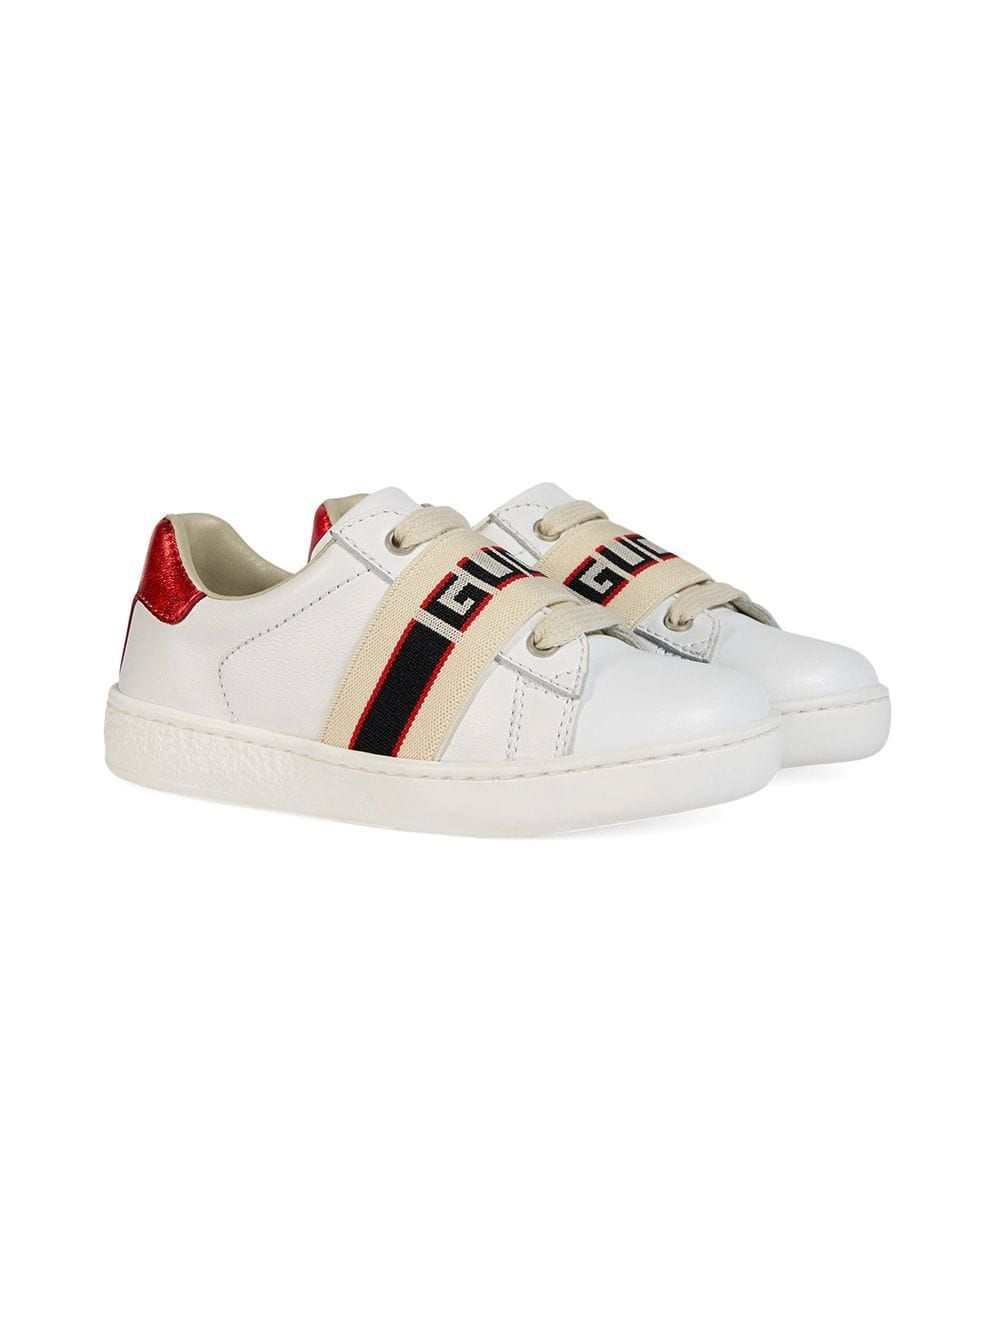 200dc4597 Gucci Kids Toddler Ace leather sneaker with Gucci stripe - White in ...